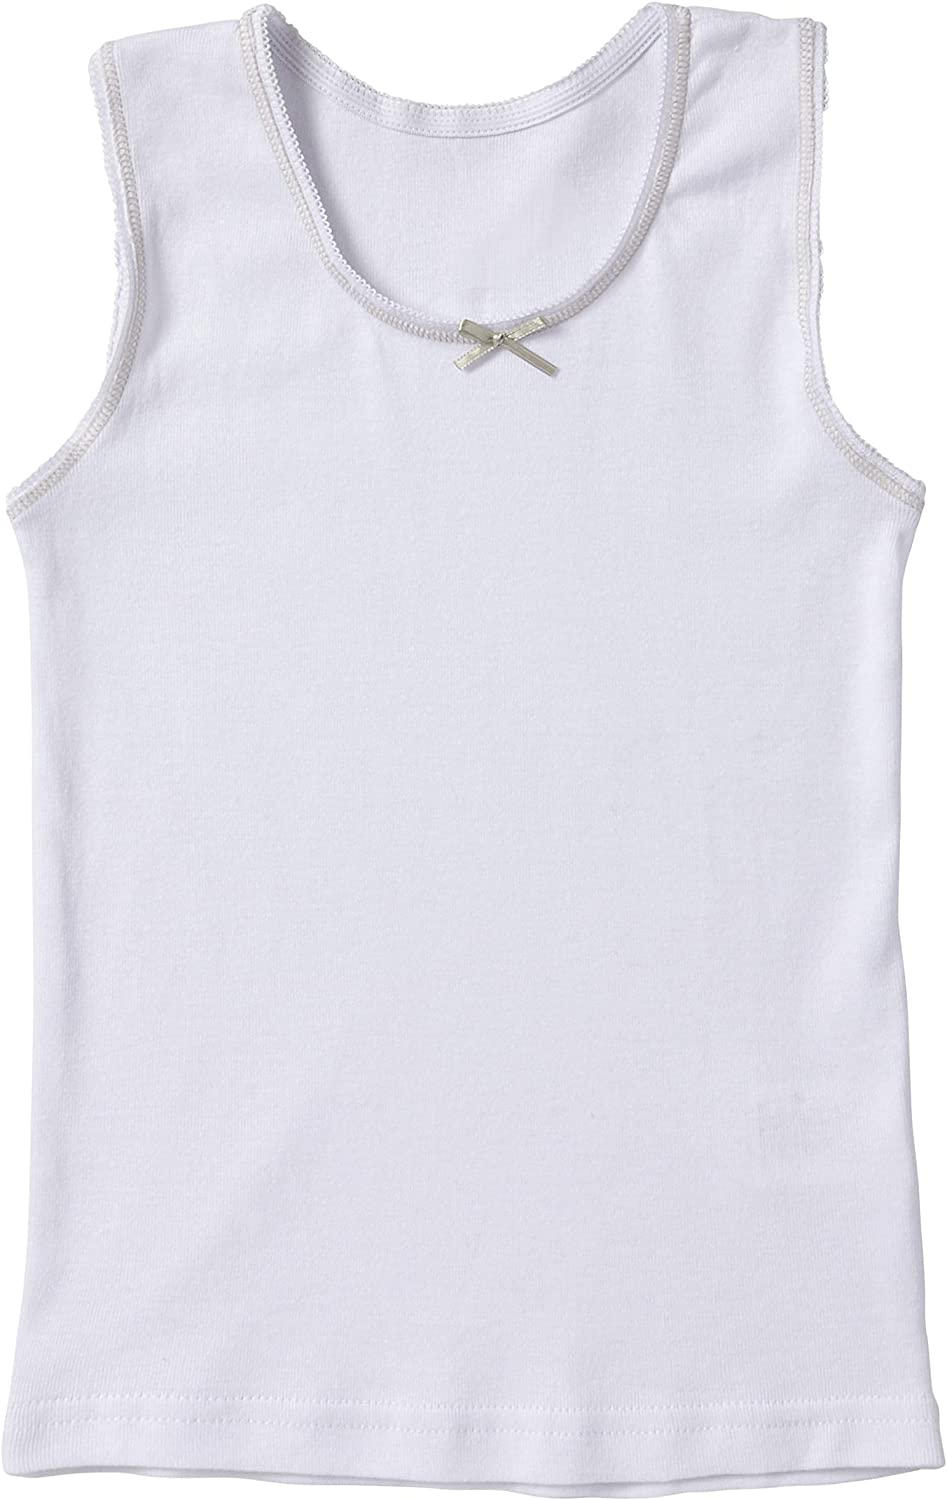 Sportoli Girls Ultra Soft 100/% Cotton White Tank Top Undershirts